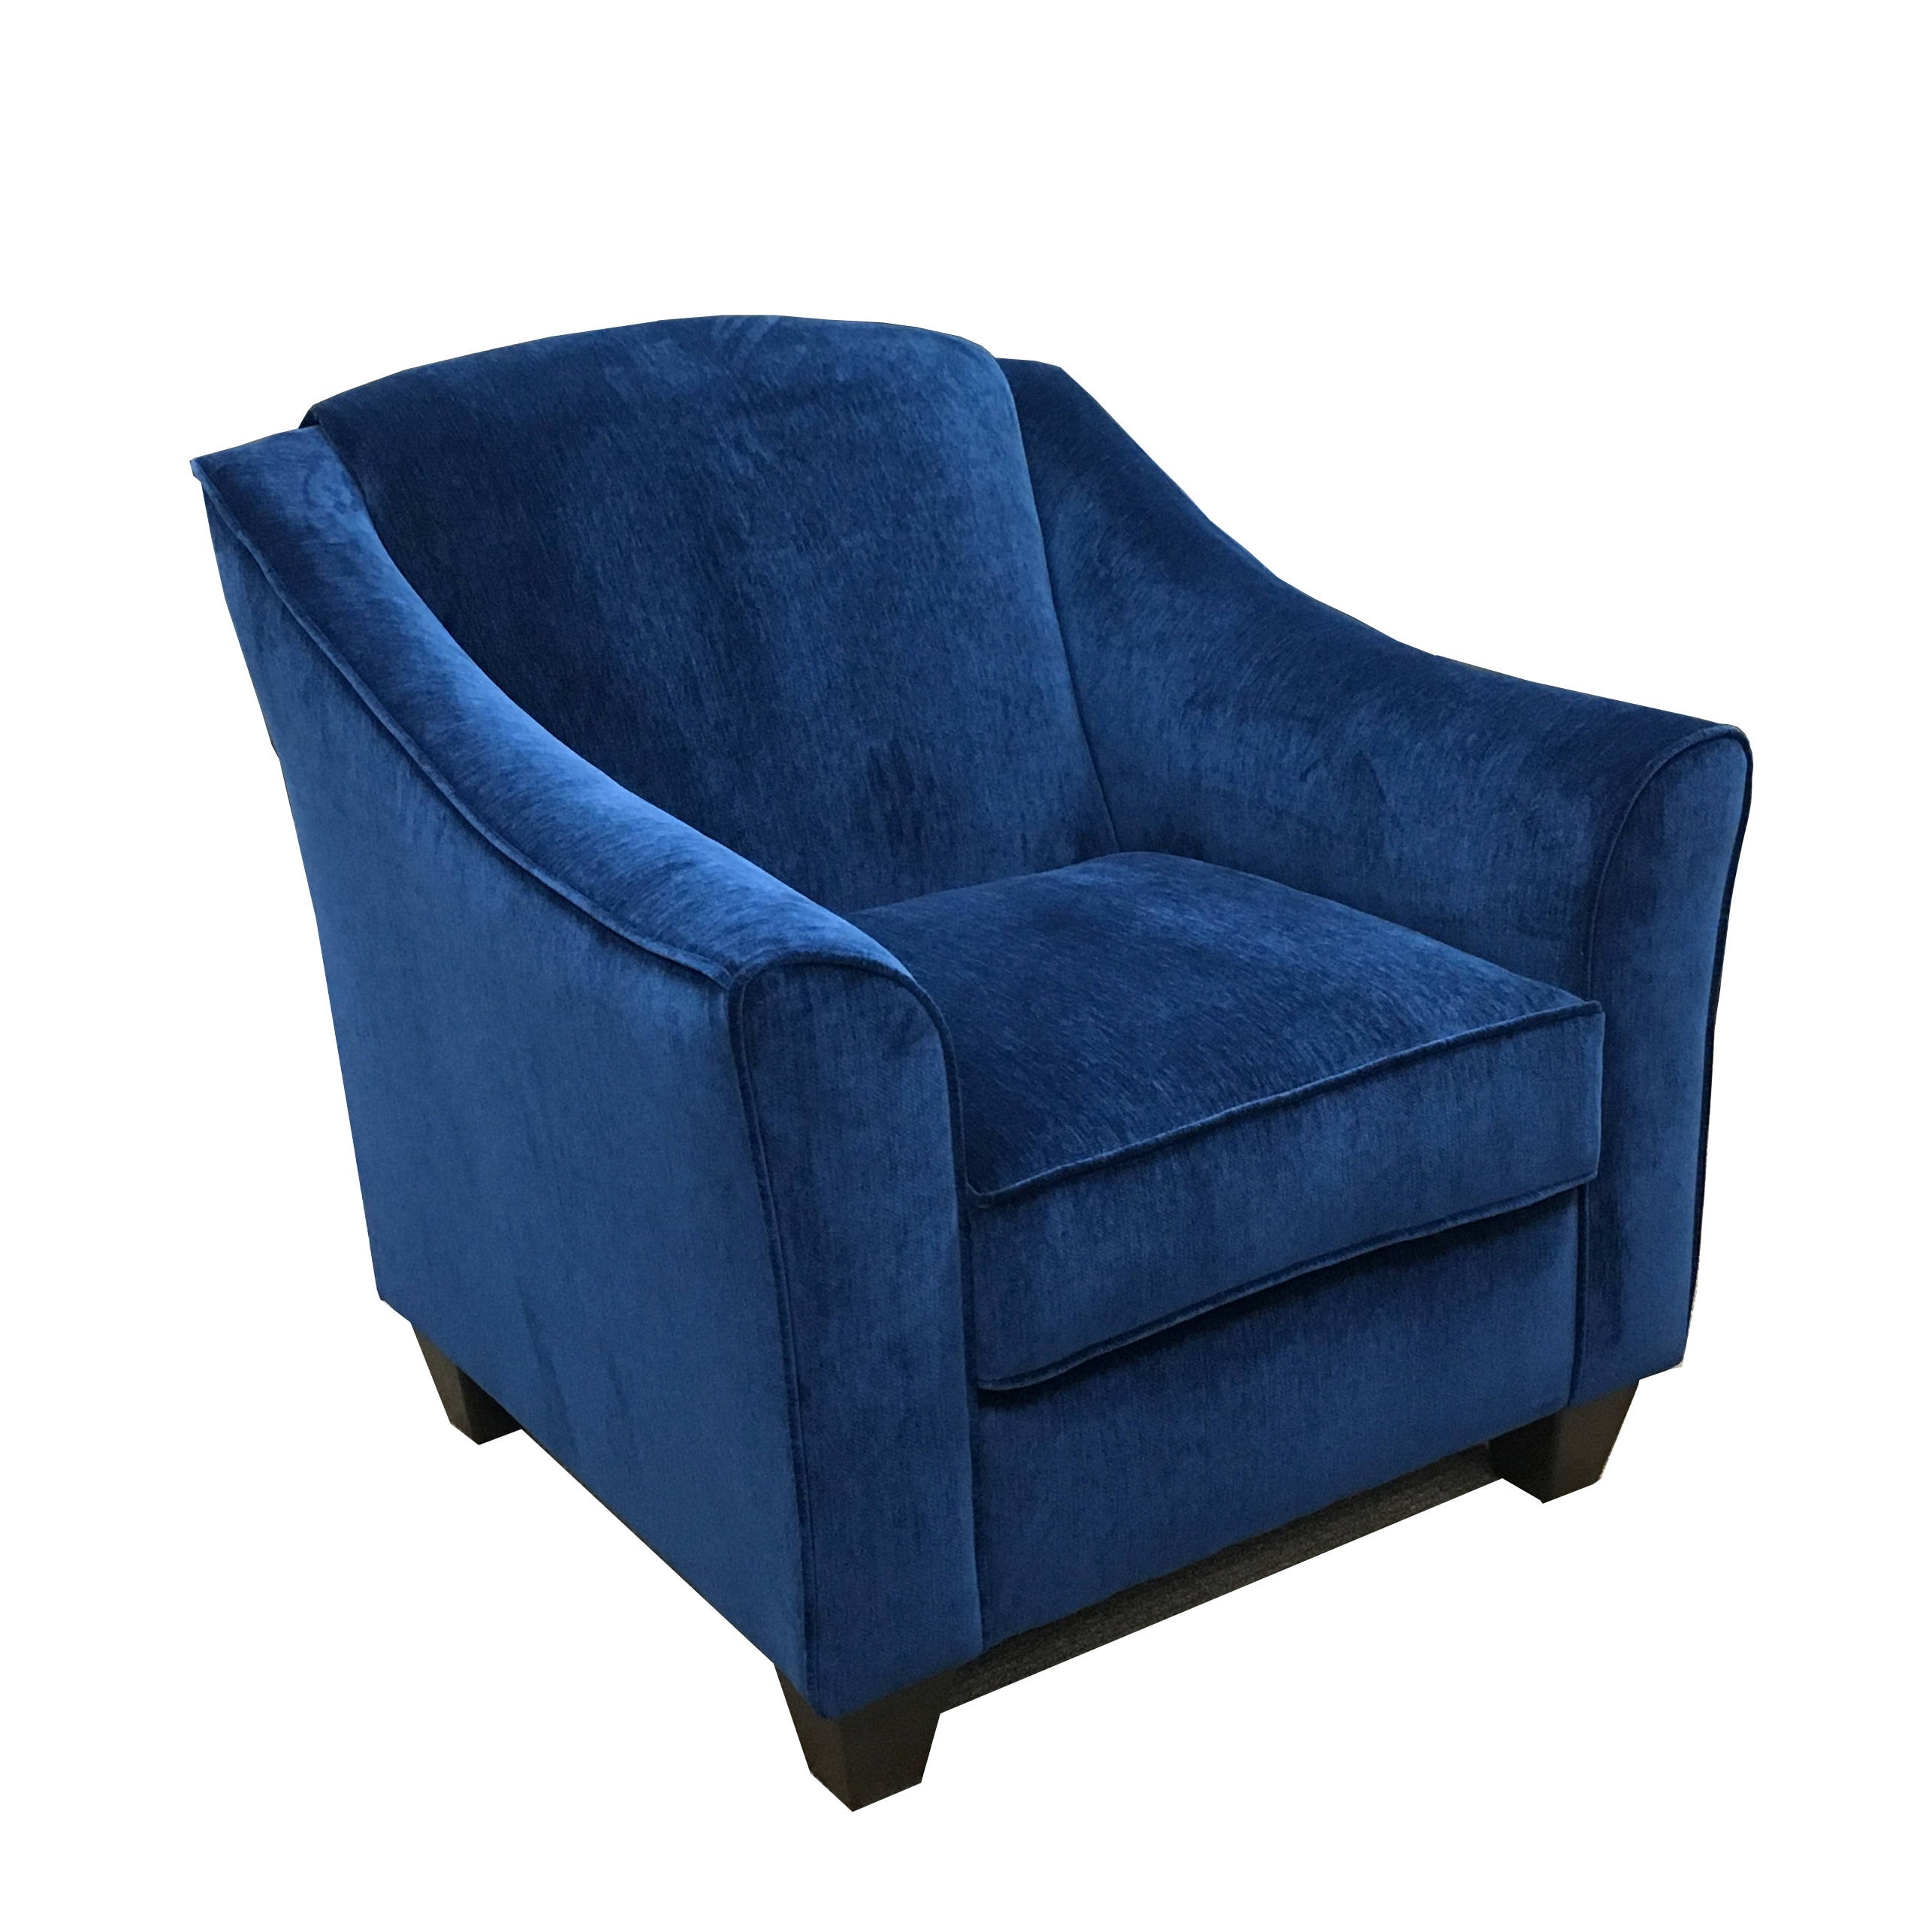 Simmons Venice Sapphire Fabric Hardwood Cushion Back Accent Chair